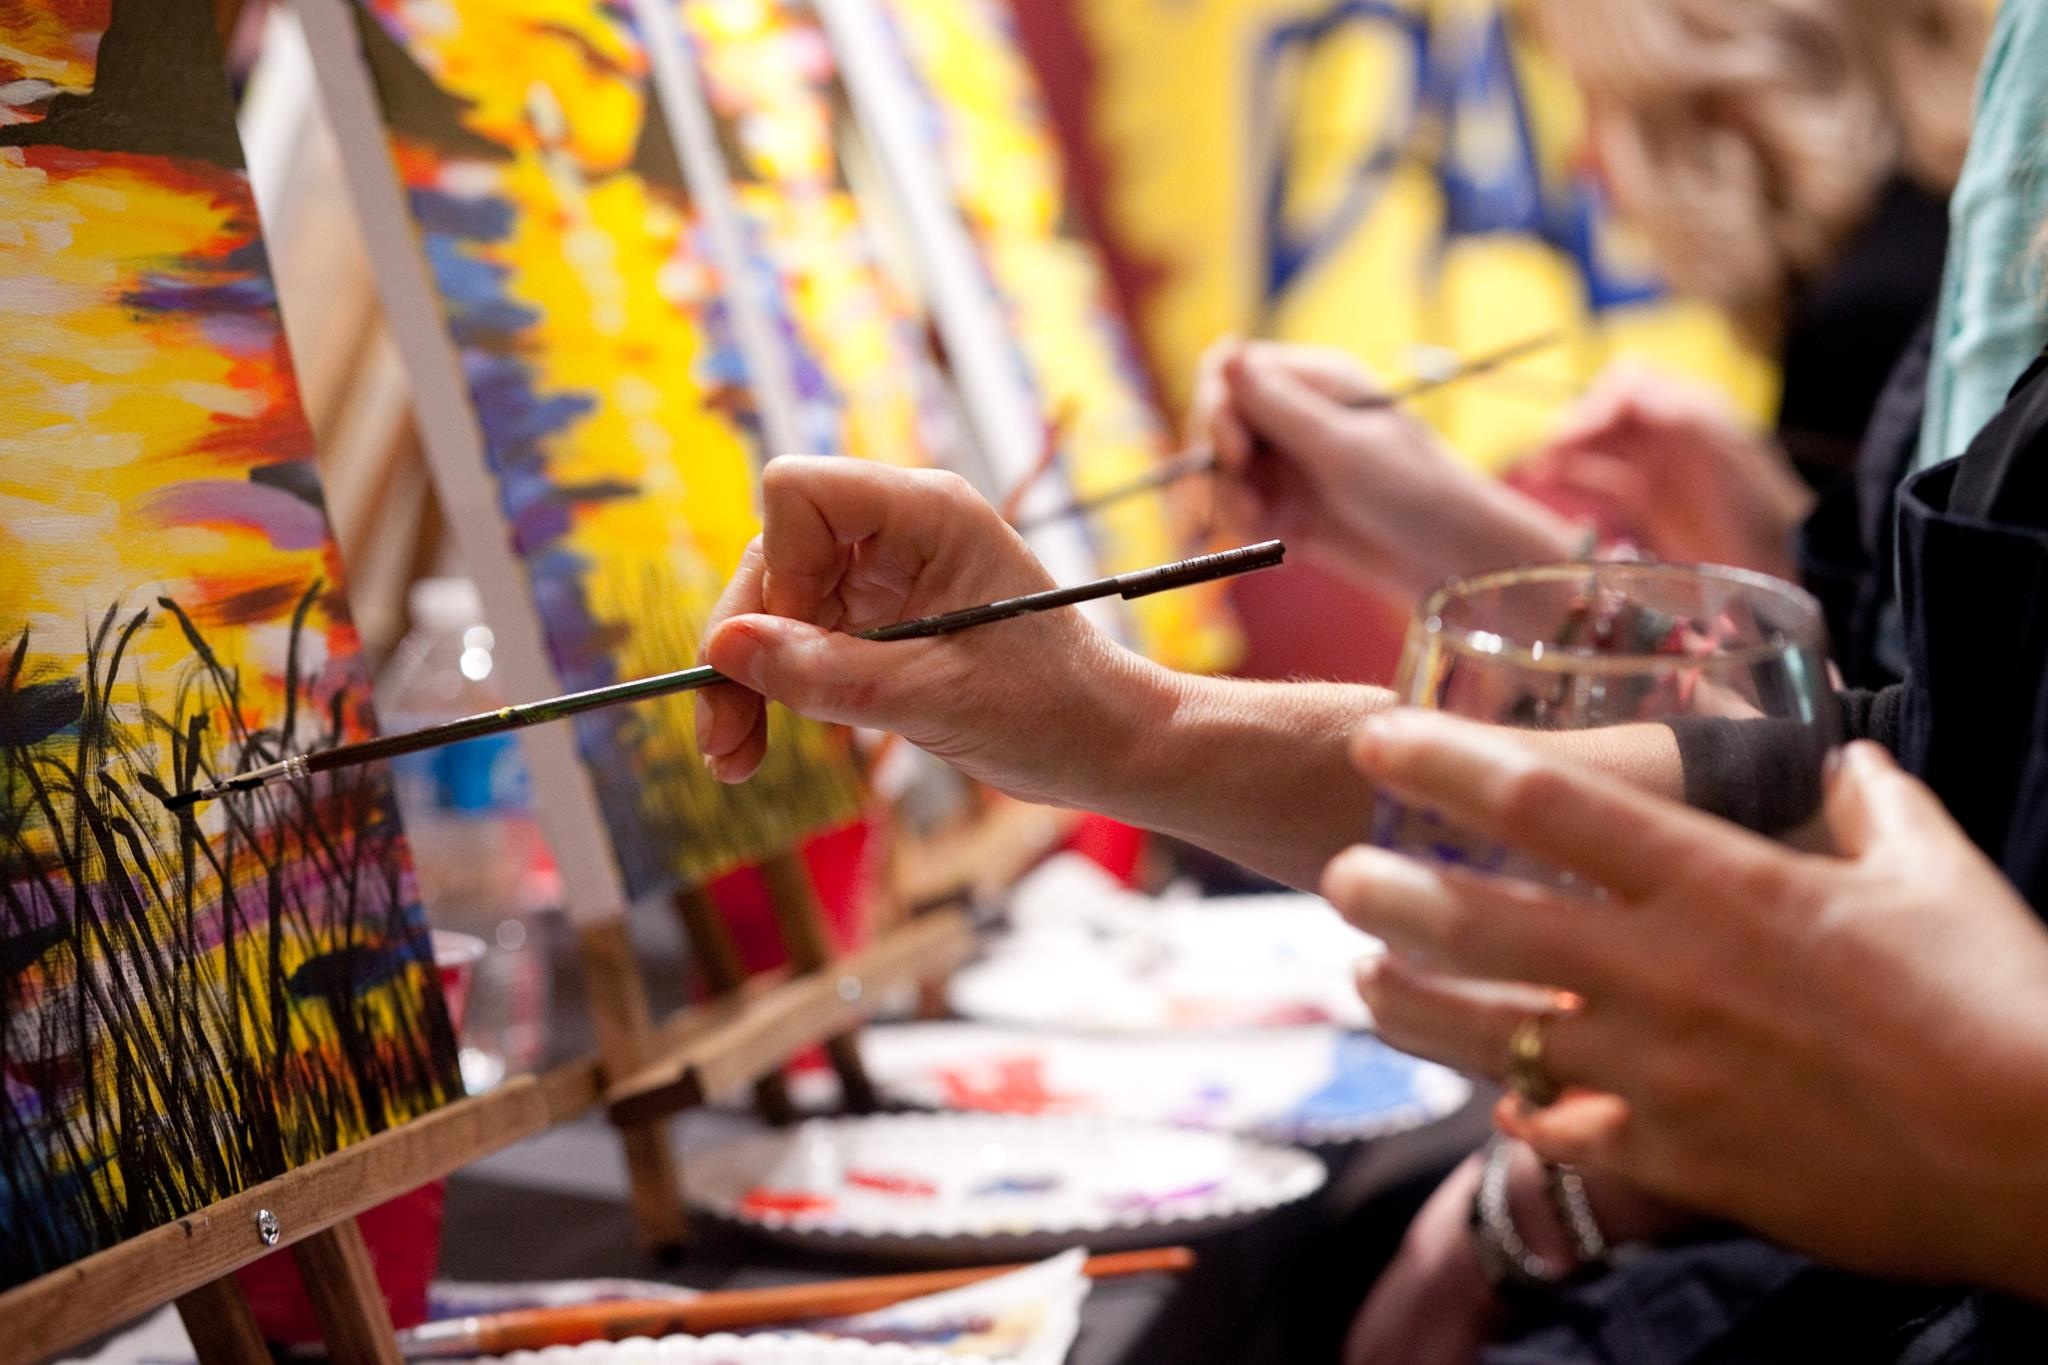 pinot's palette paint and sip wine party fun night out first time